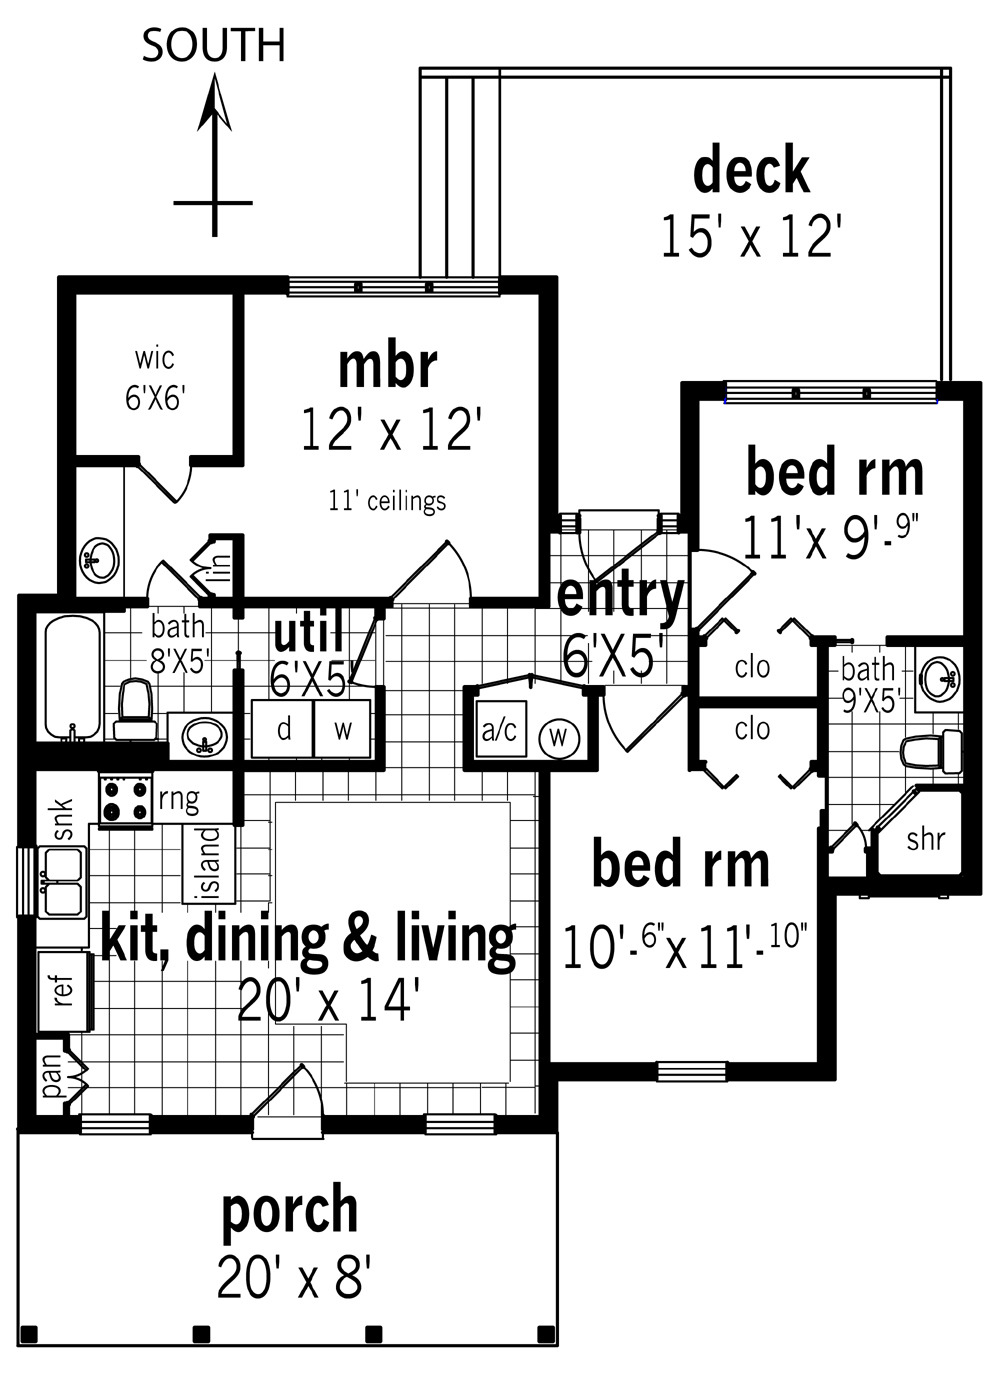 Free 3d Drawing software for House Plans Best Of Cottage House Plan with 3 Bedrooms and 2 5 Baths Plan 3162